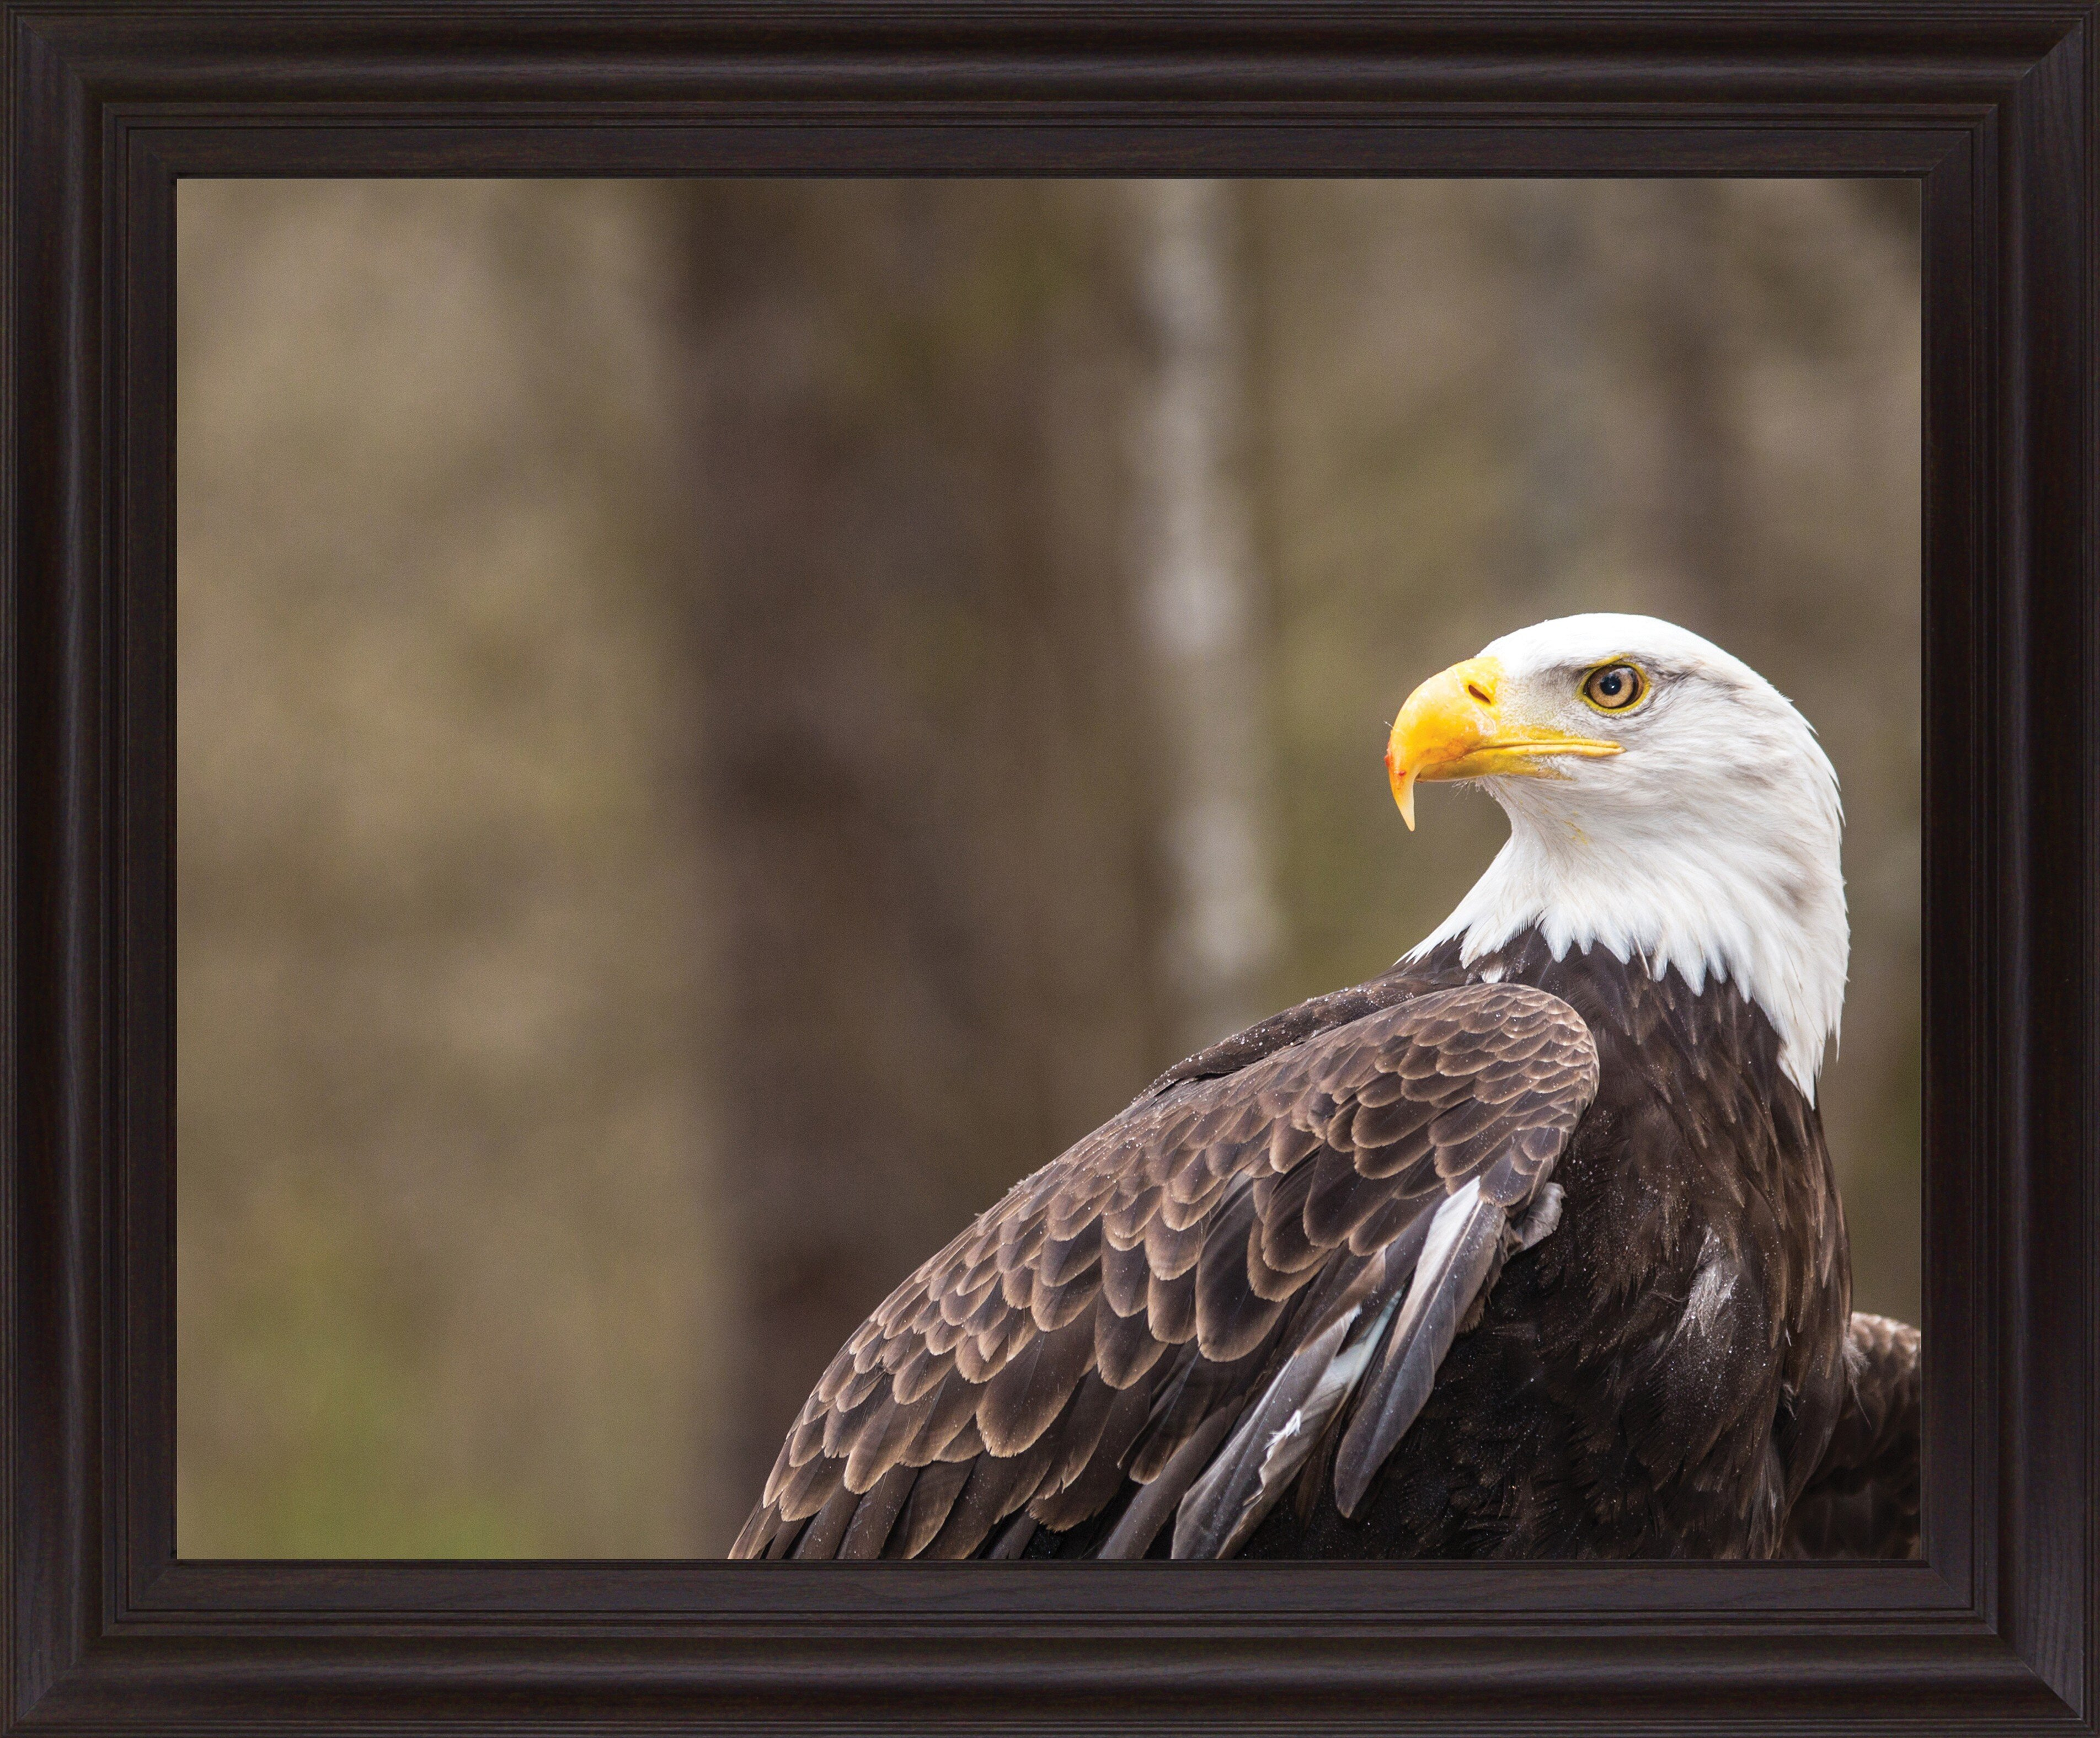 Millwood Pines Majestic Eagle By Garytog Picture Frame Photograph Print On Plastic Wayfair